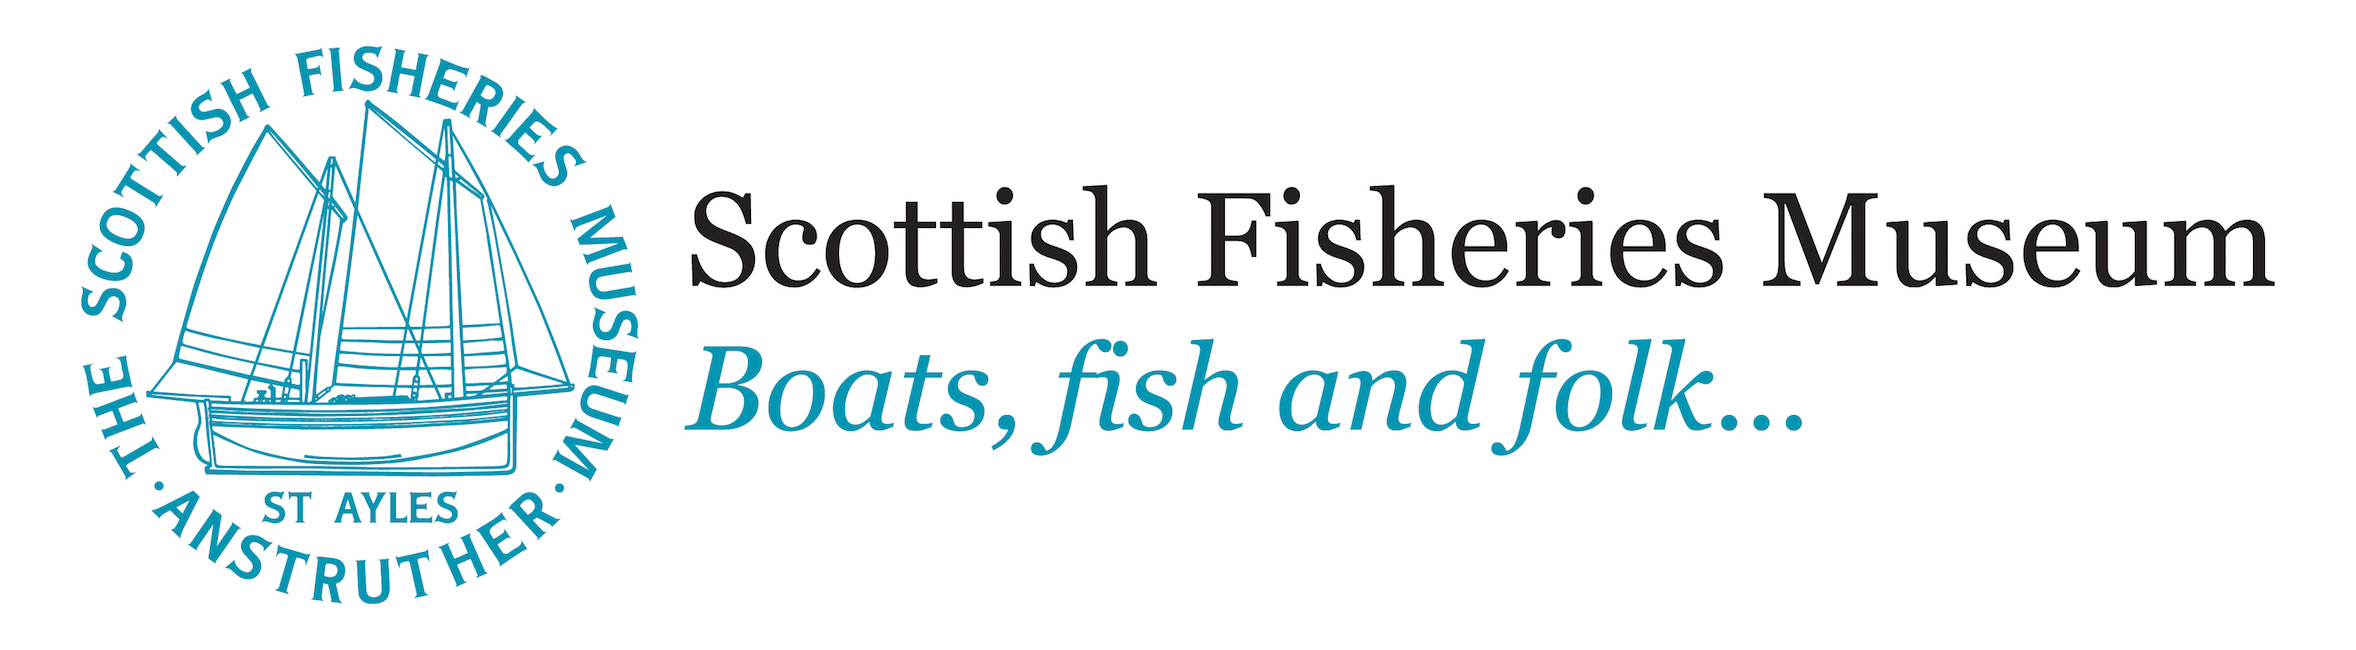 Scottish Fisheries Museum header